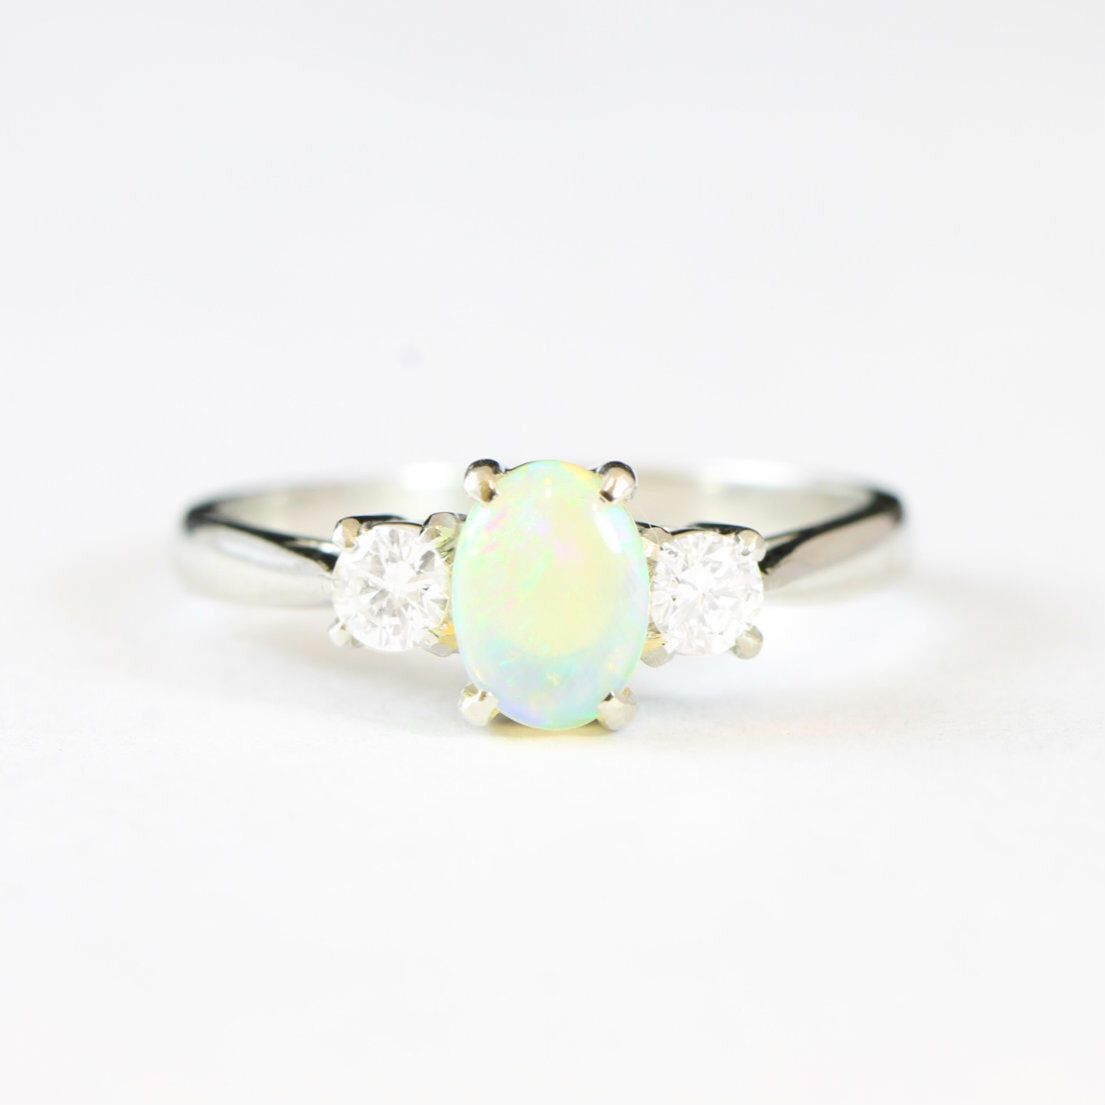 White Gold Opal And Diamond Engagement Ring In 18 Carat For Her Handmade Uk